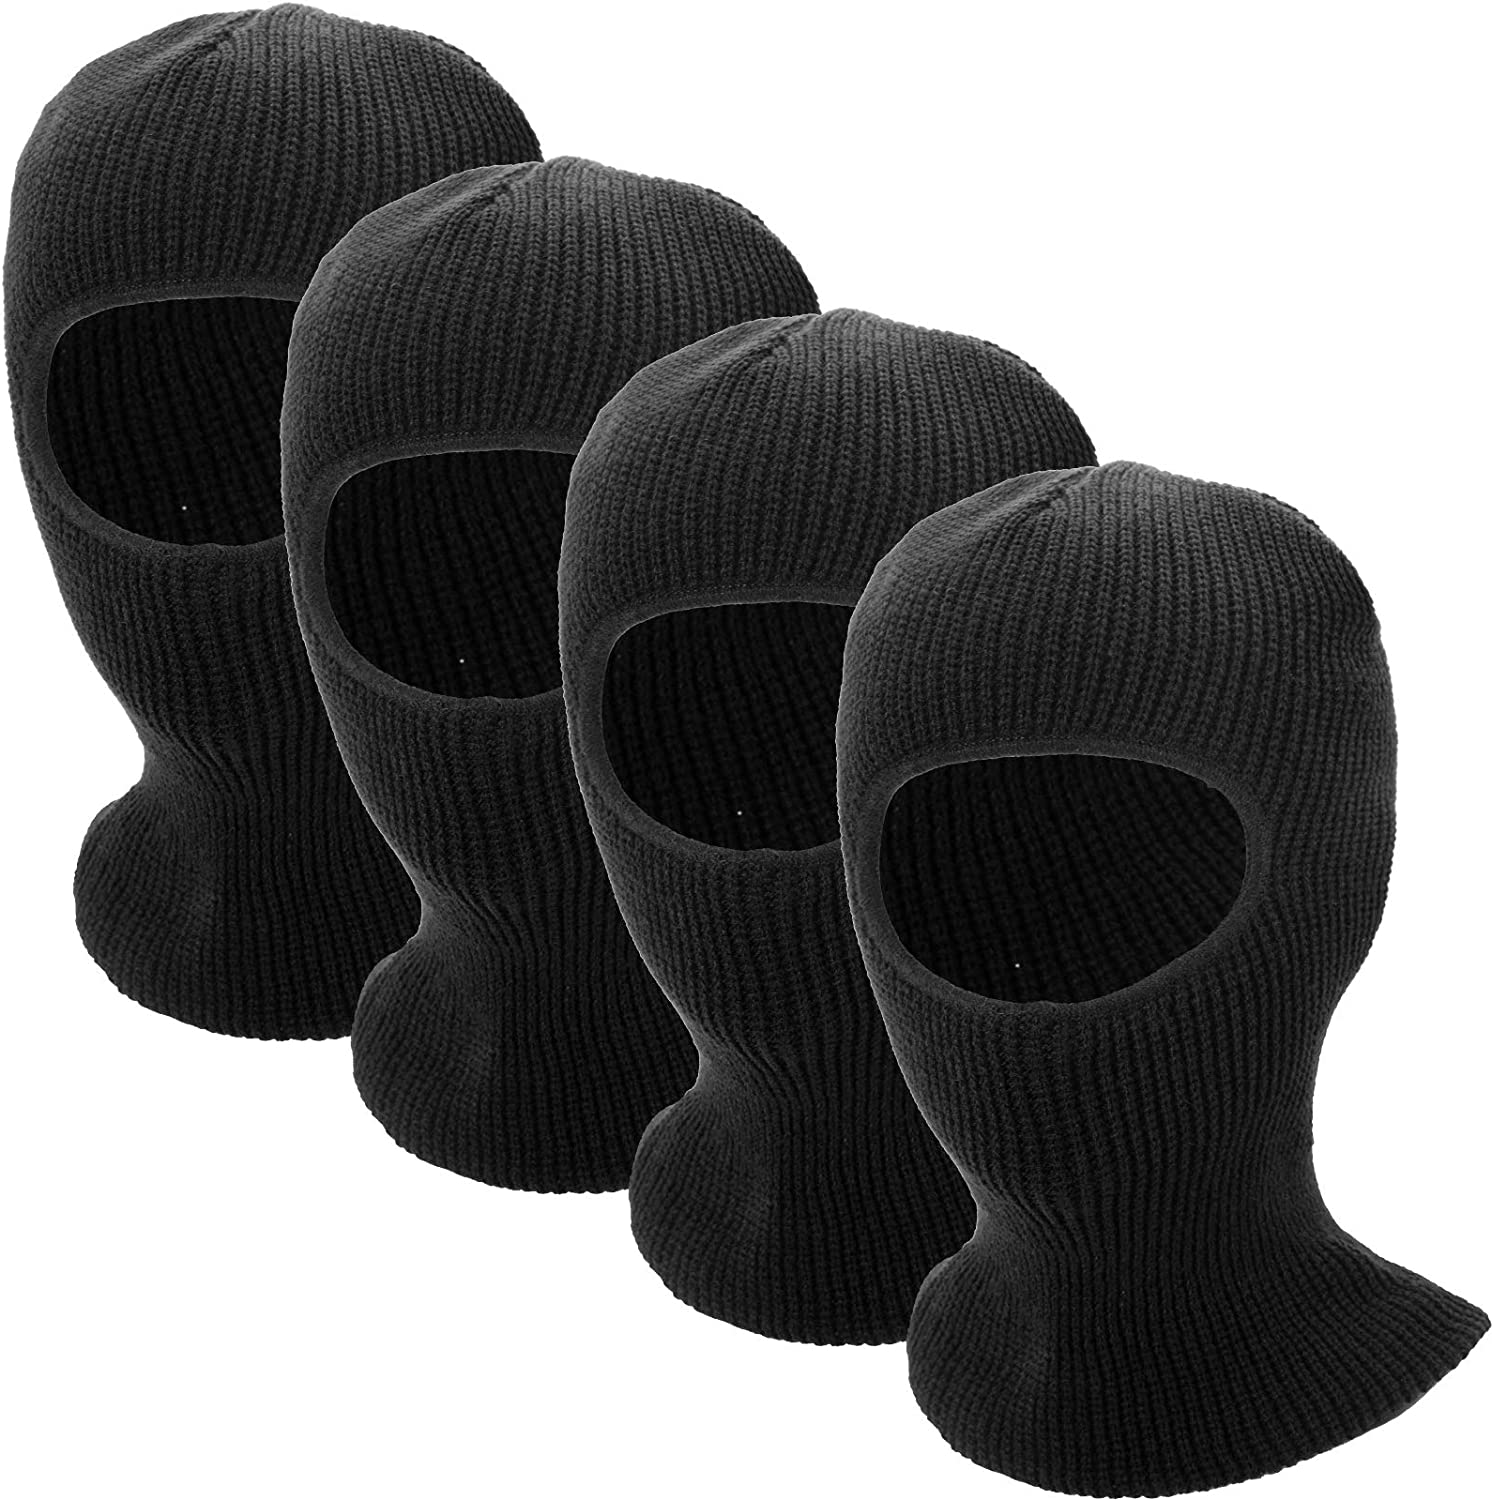 4 Pieces of Ski Knitted Face Cover- Winter Warm Balaclava Full Face Mask Windproof Neck Gaiter for Winter Outdoor Sports Black